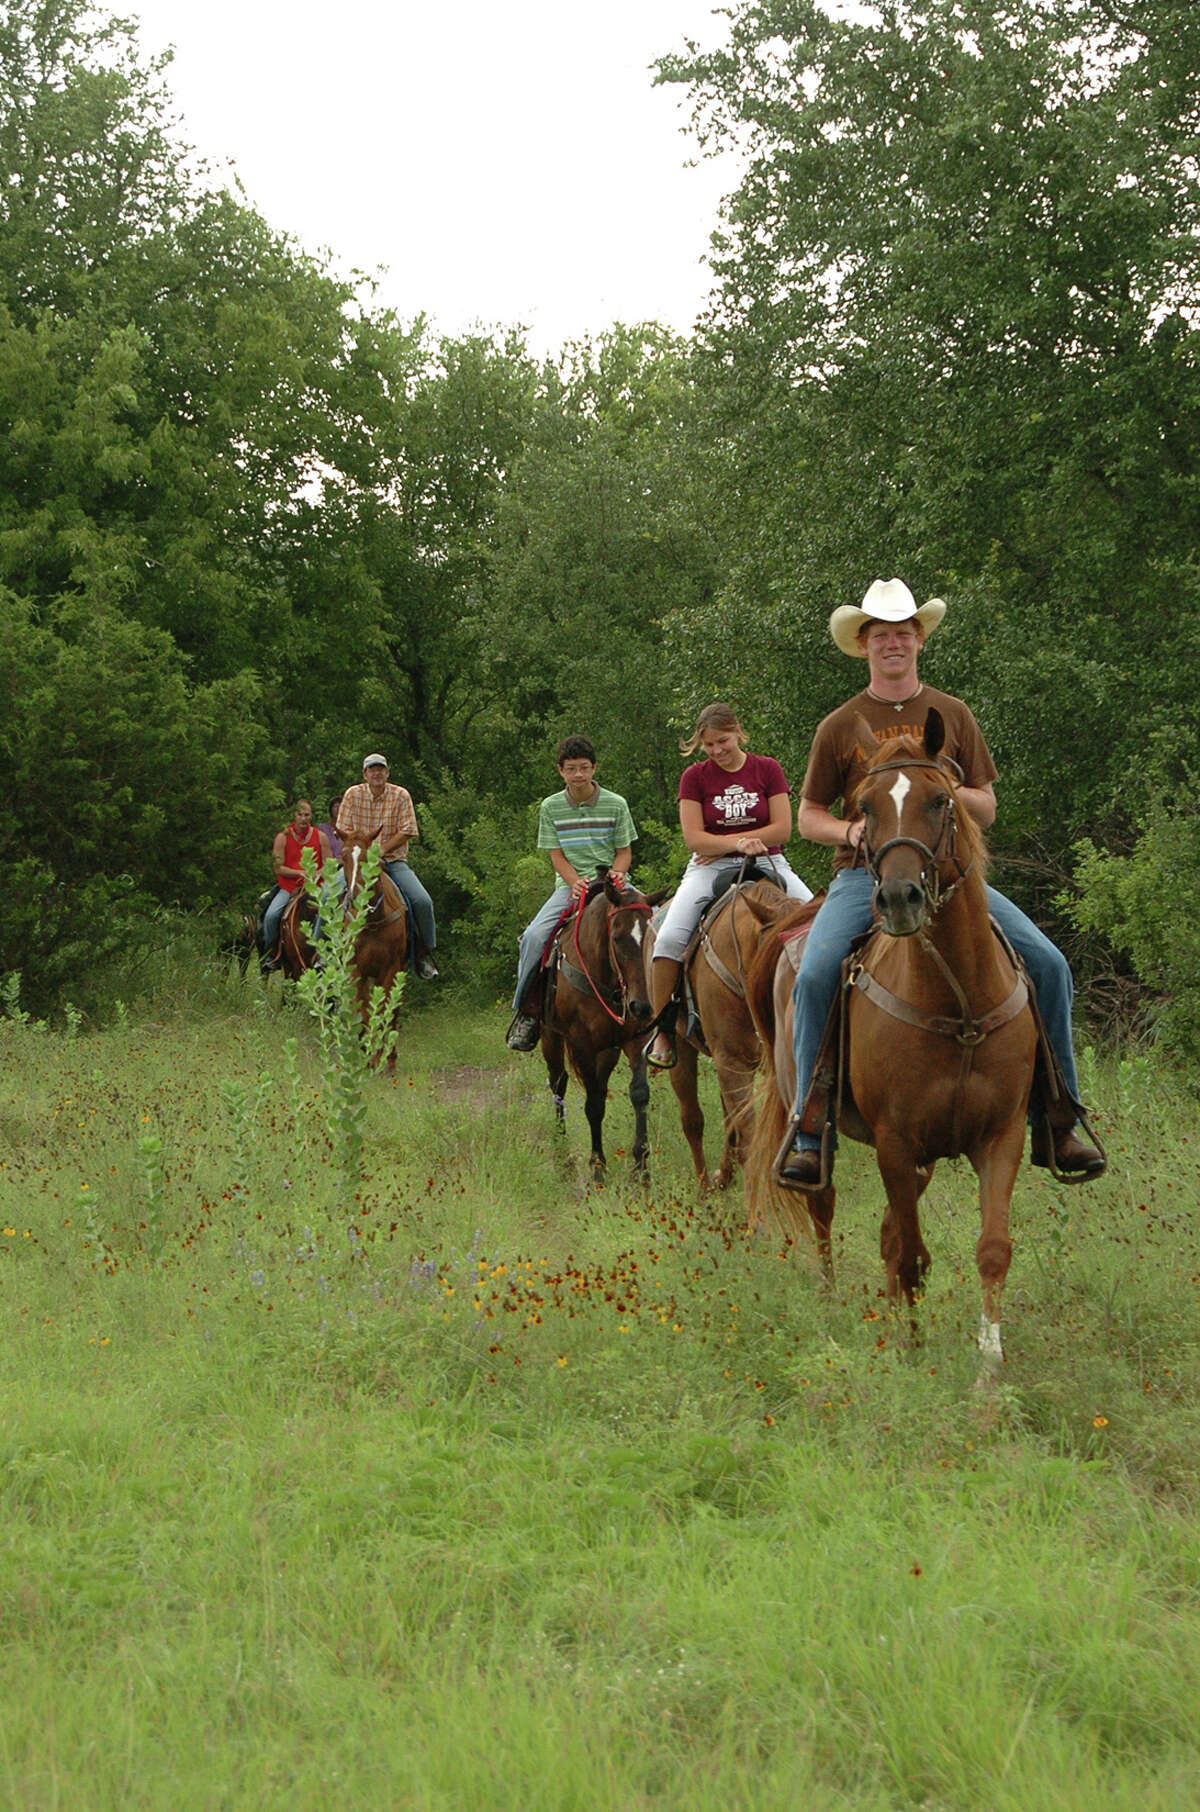 The Mayan Dude Ranch 350 Mayan Ranch Rd, Bandera, Texas; phone: 830-796-3312 More than 330 acres of rural sprawl welcomes guests at this Hicks' family parcel. The prominent Lone Star State relatives founded this facility in 1951, and it kept the original moniker (which may explain why its name conjures images of Chichén Itzá, not spurs). Families descend on this ranch for horseback rides, saloon-style dancing and refreshing swims in the nearby Medina River. Its family-friendly activities include lasso lessons for kids and a petting-zoo-like range of friendly animals to enjoy. Rates here are all inclusive: they include meals, lodging, ranch fun and drinks.